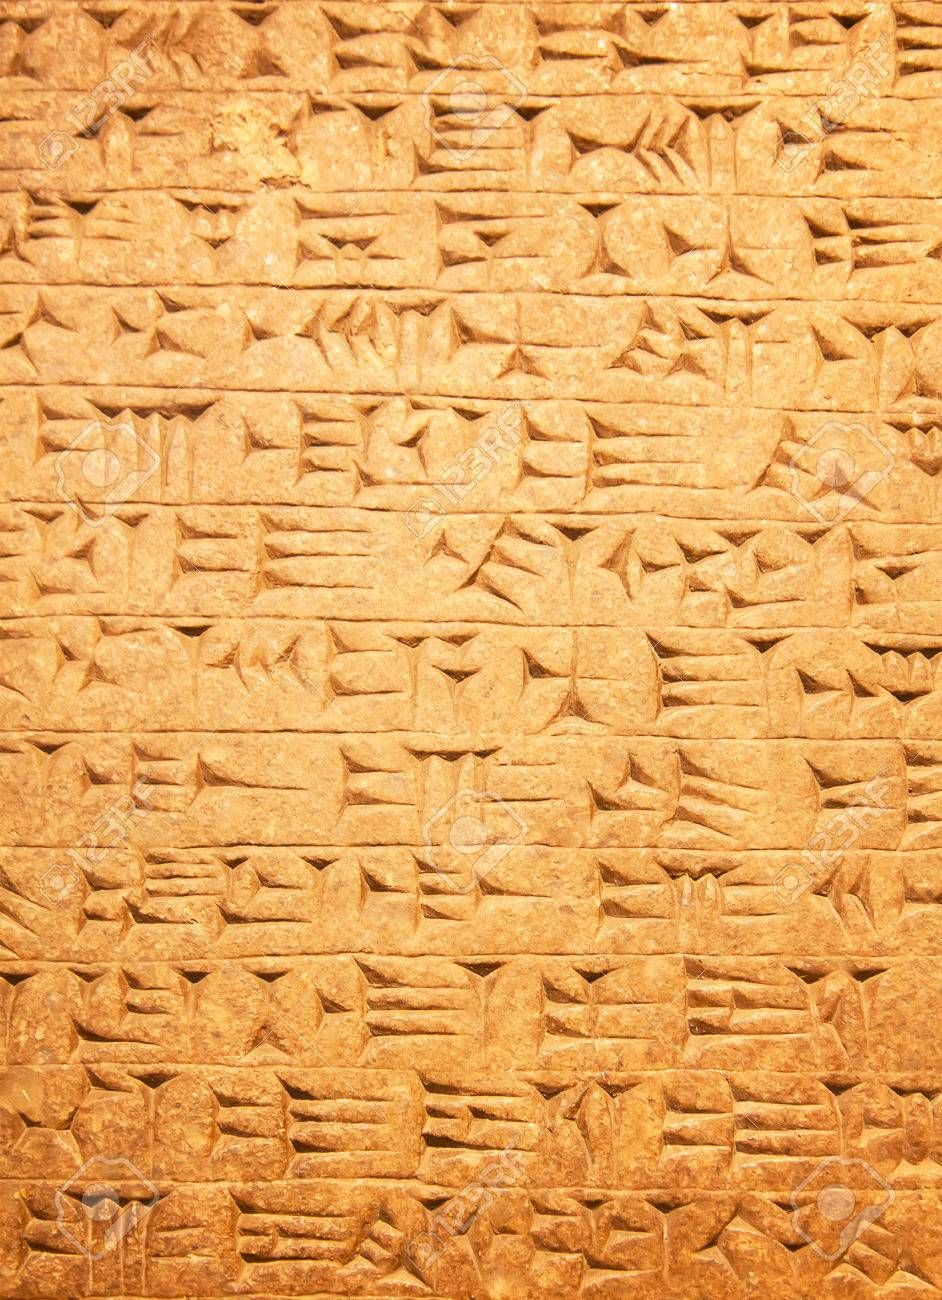 Ancient sumerian stone carving with cuneiform scripting - 36293660